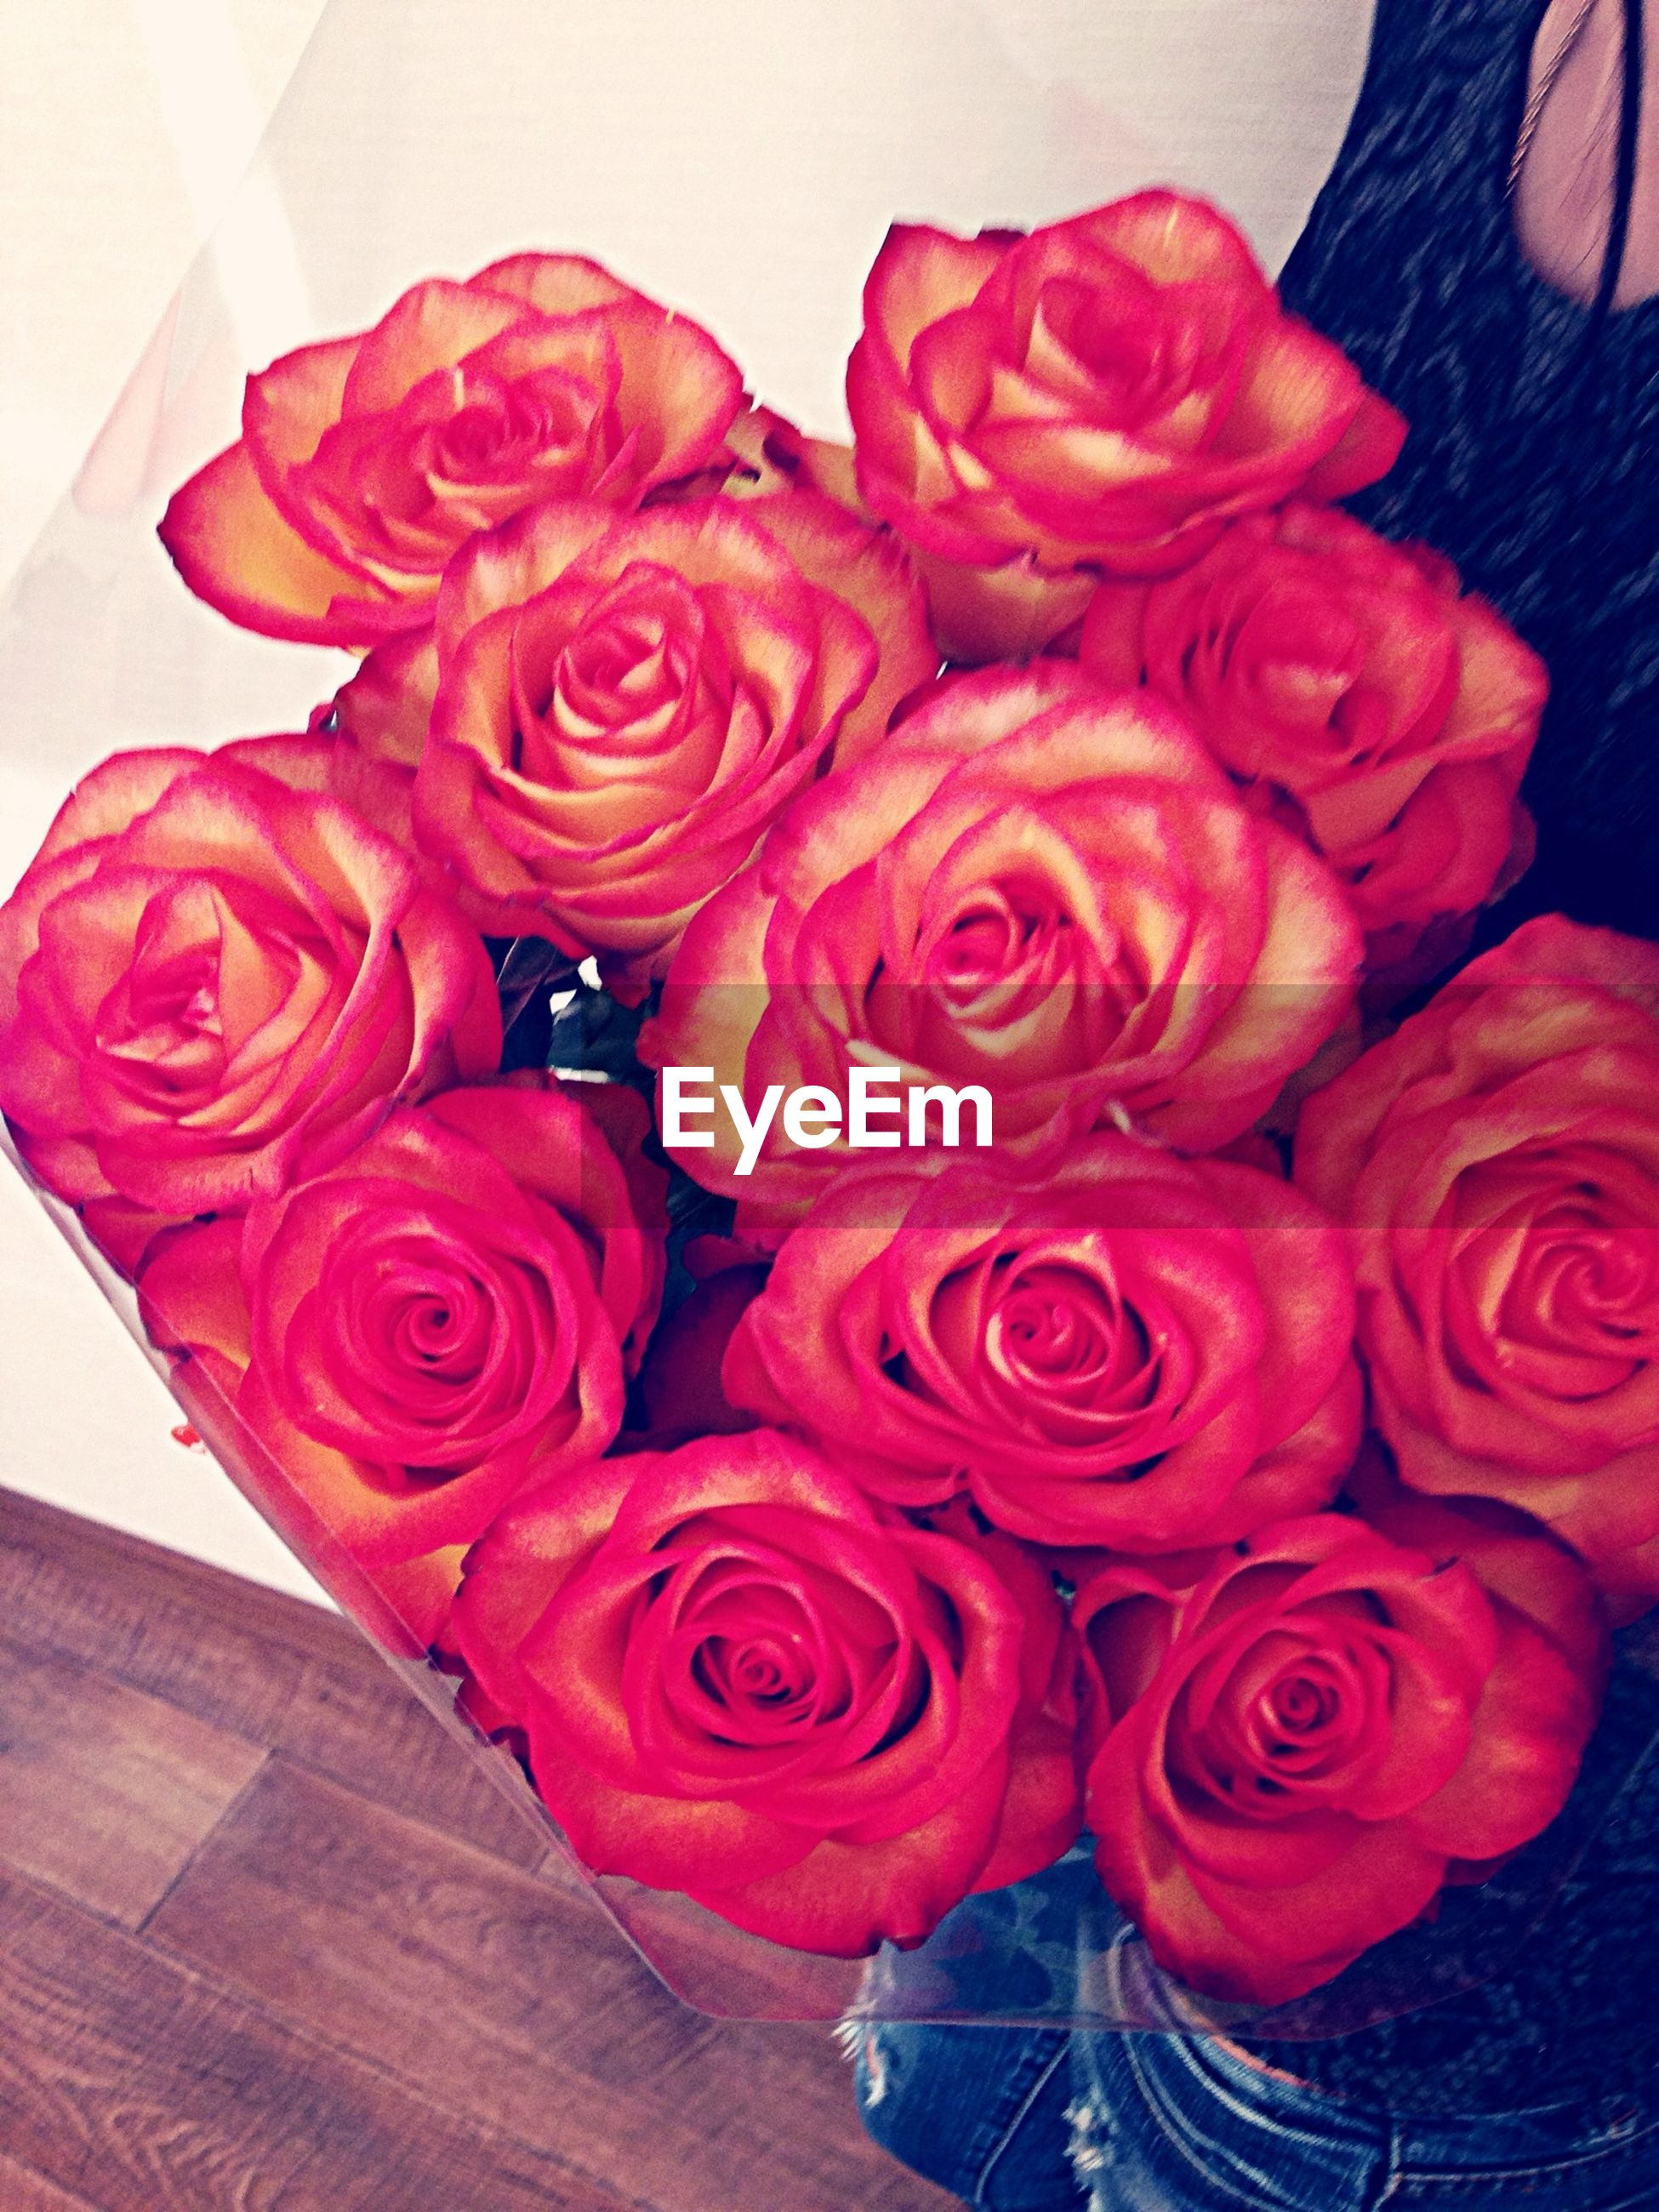 flower, rose - flower, petal, freshness, indoors, fragility, red, rose, flower head, bouquet, beauty in nature, high angle view, close-up, pink color, vase, bunch of flowers, nature, no people, table, flower arrangement